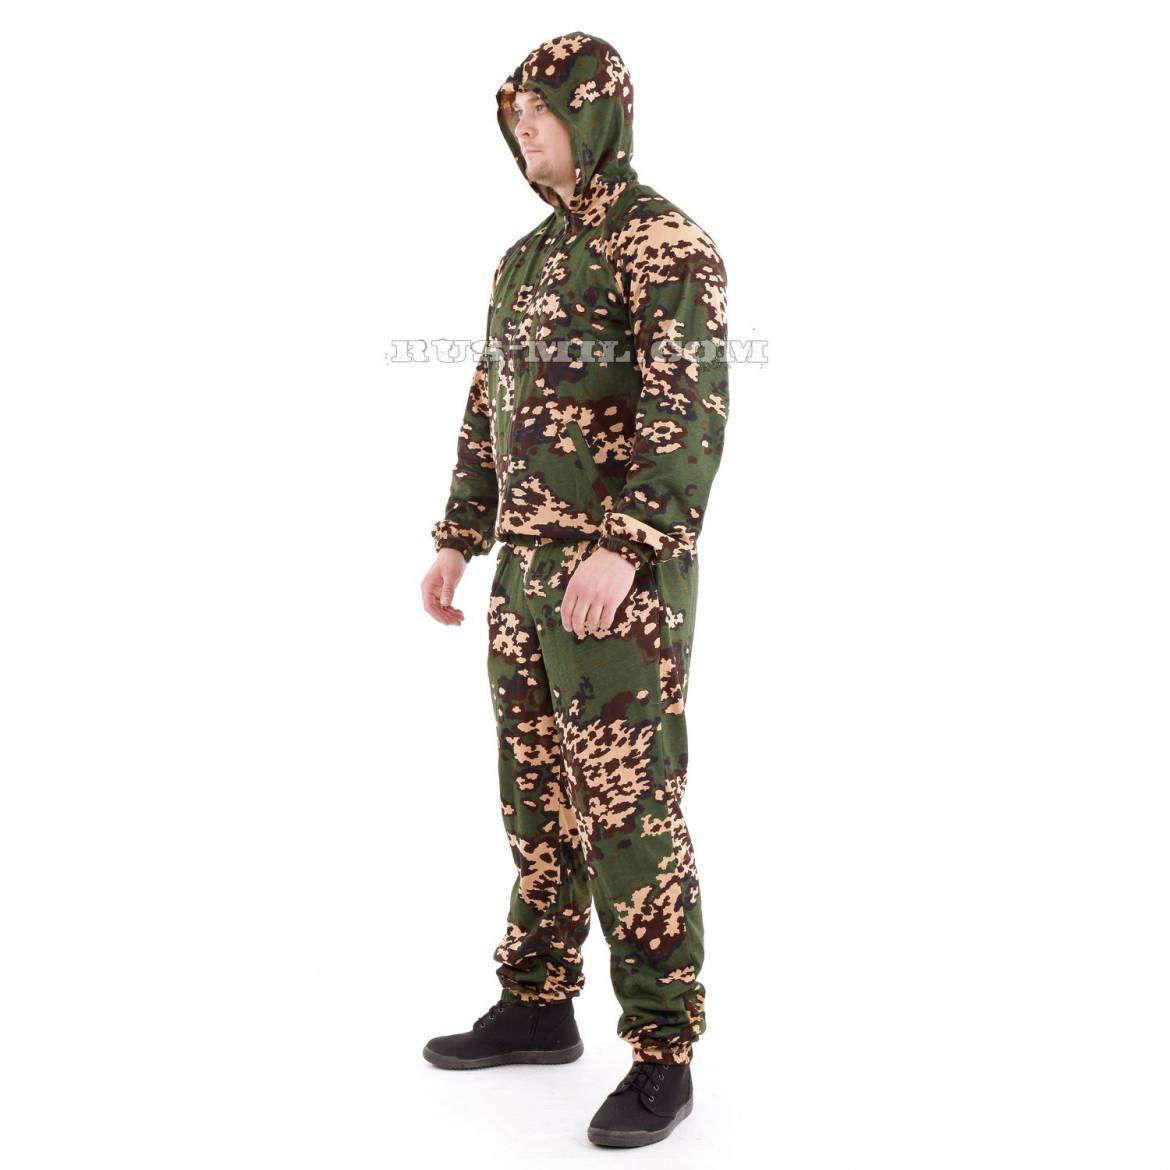 knitted-Suit-in-22Partisan22-Colour-for-sale.jpg